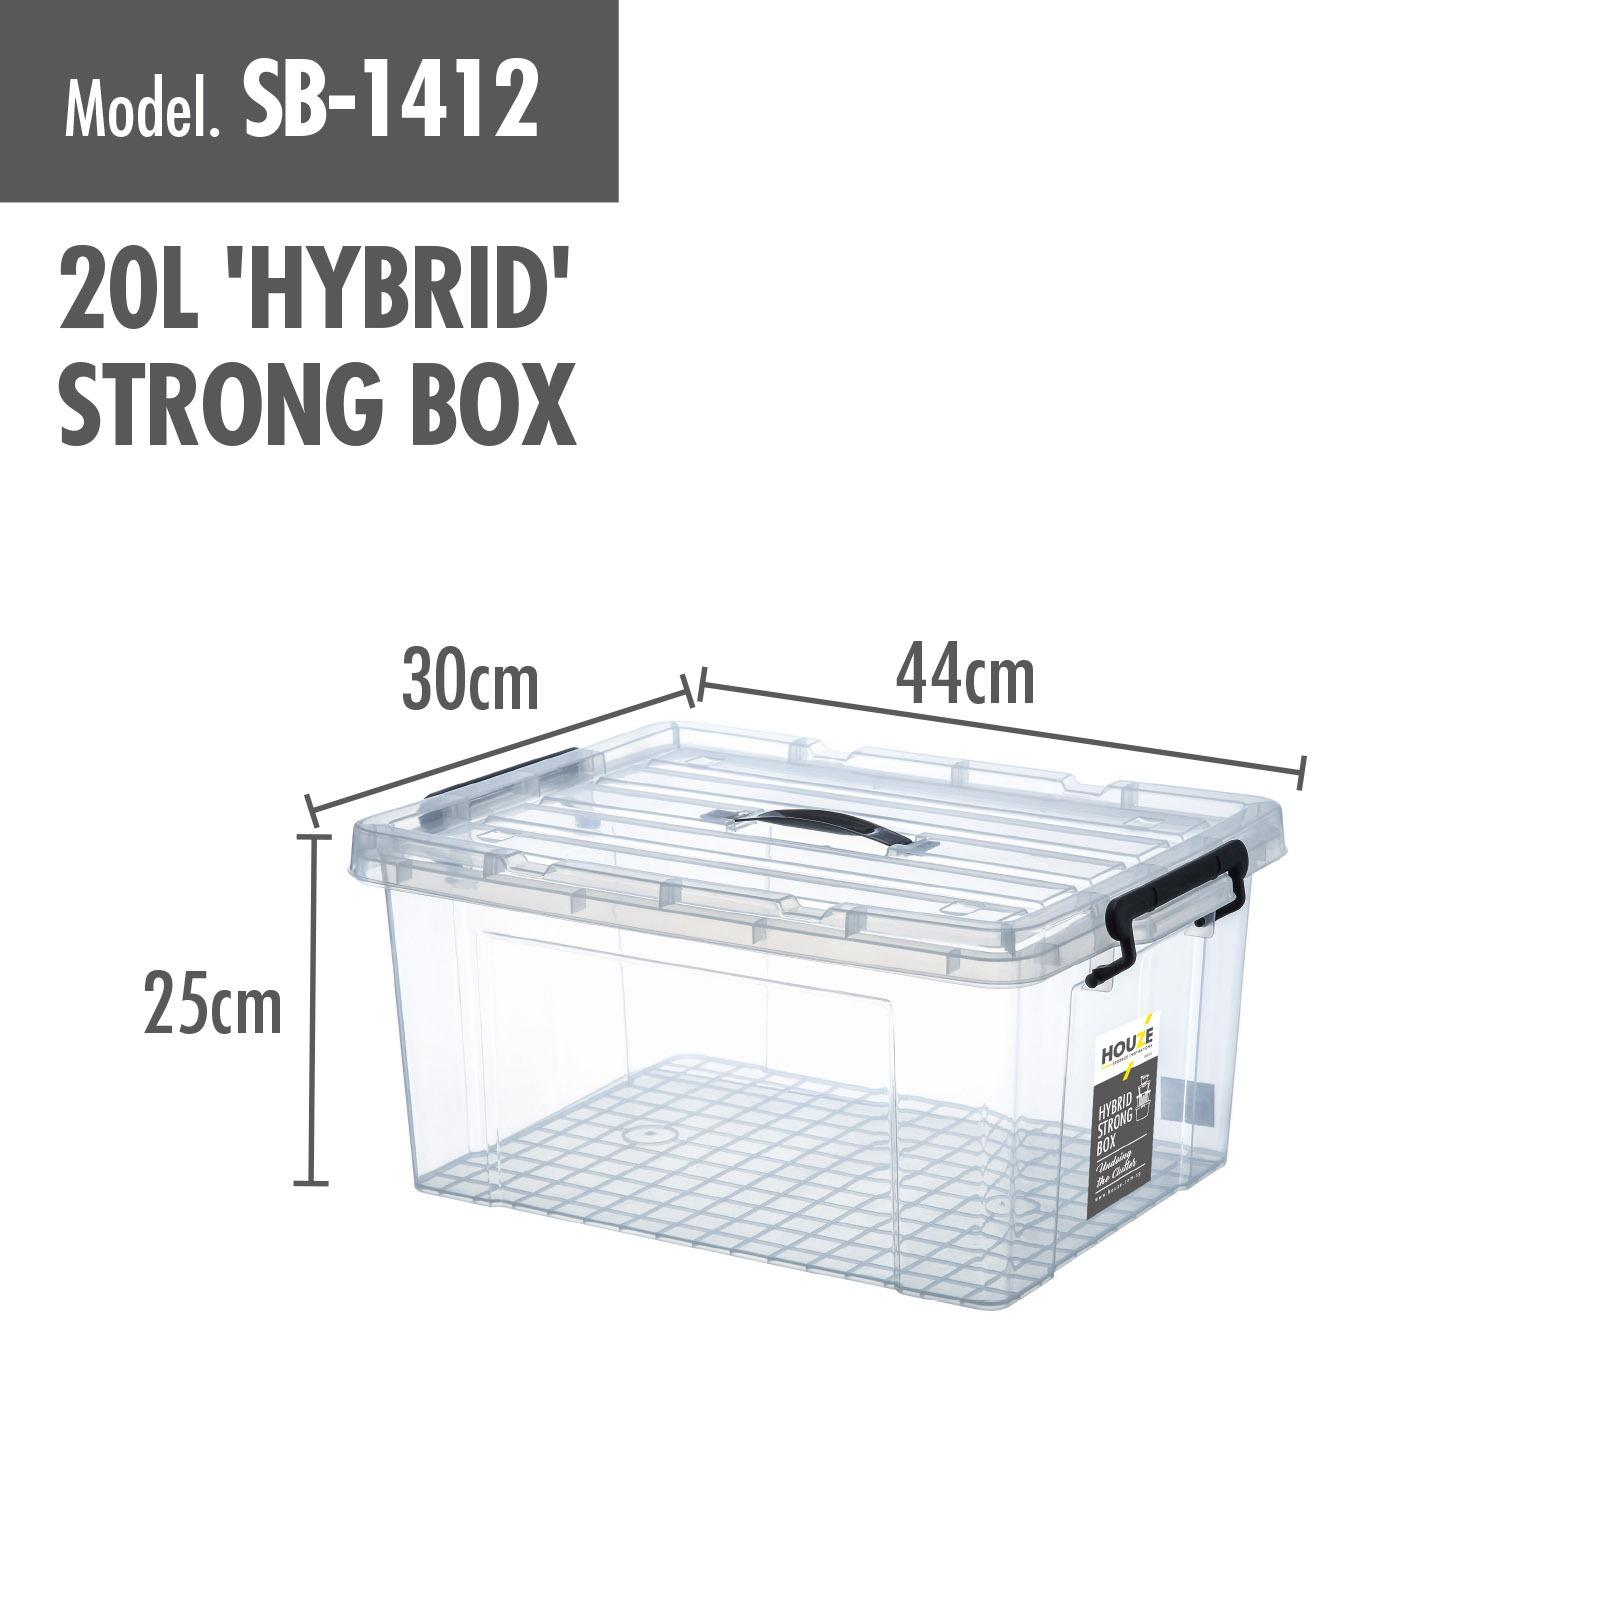 Houze 20L Hybrid Strong Box Reviews